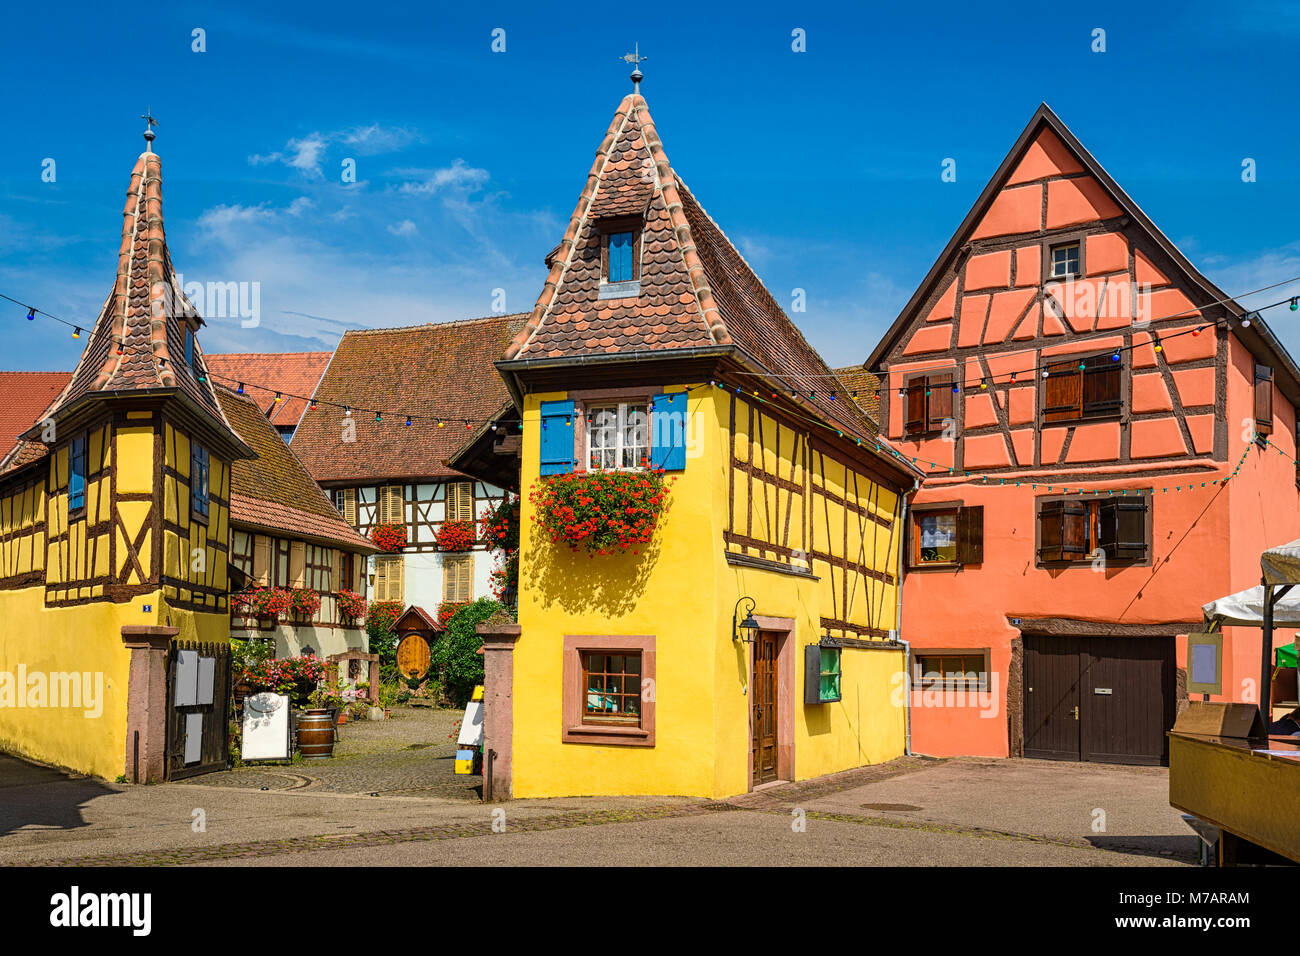 Medieval buidings in Eguisheim near Colmar, France - Stock Image